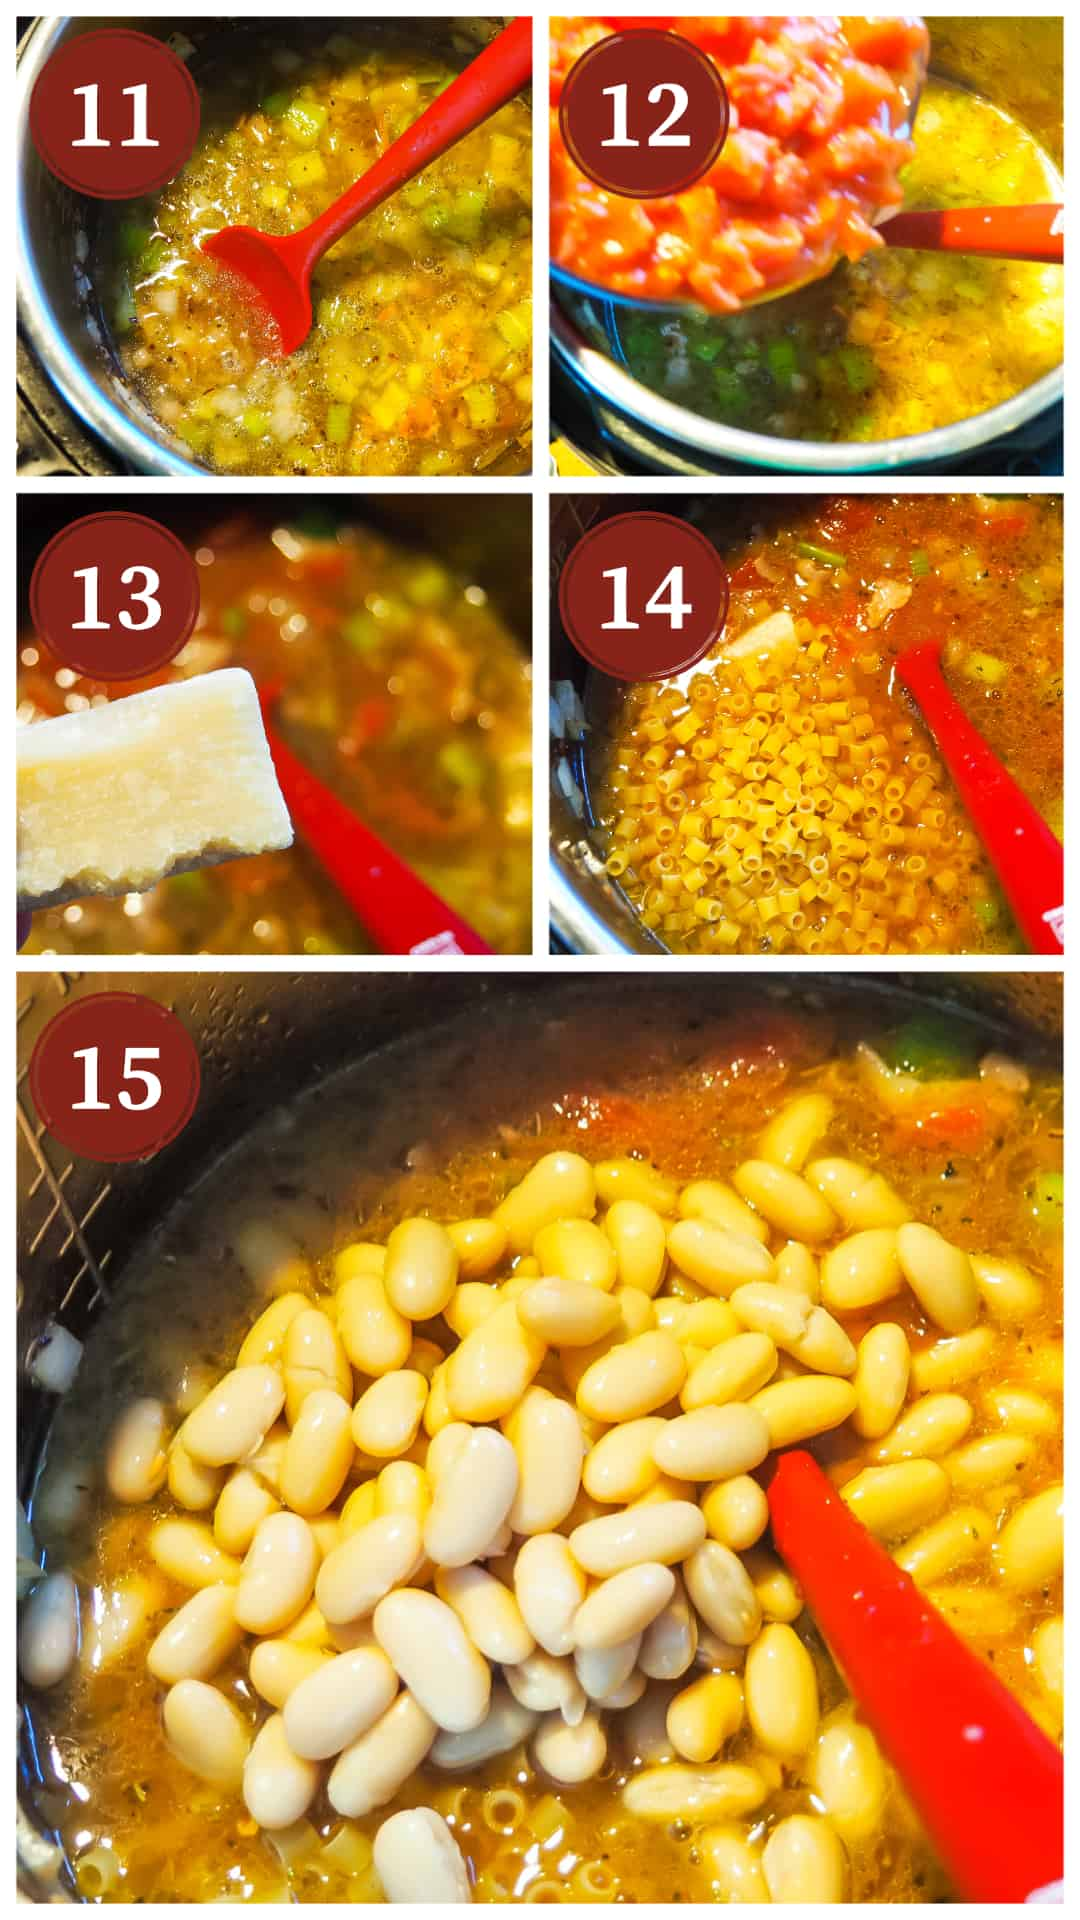 A process collage of images for making pasta e fagioli in an instant pot, steps 11 - 15.